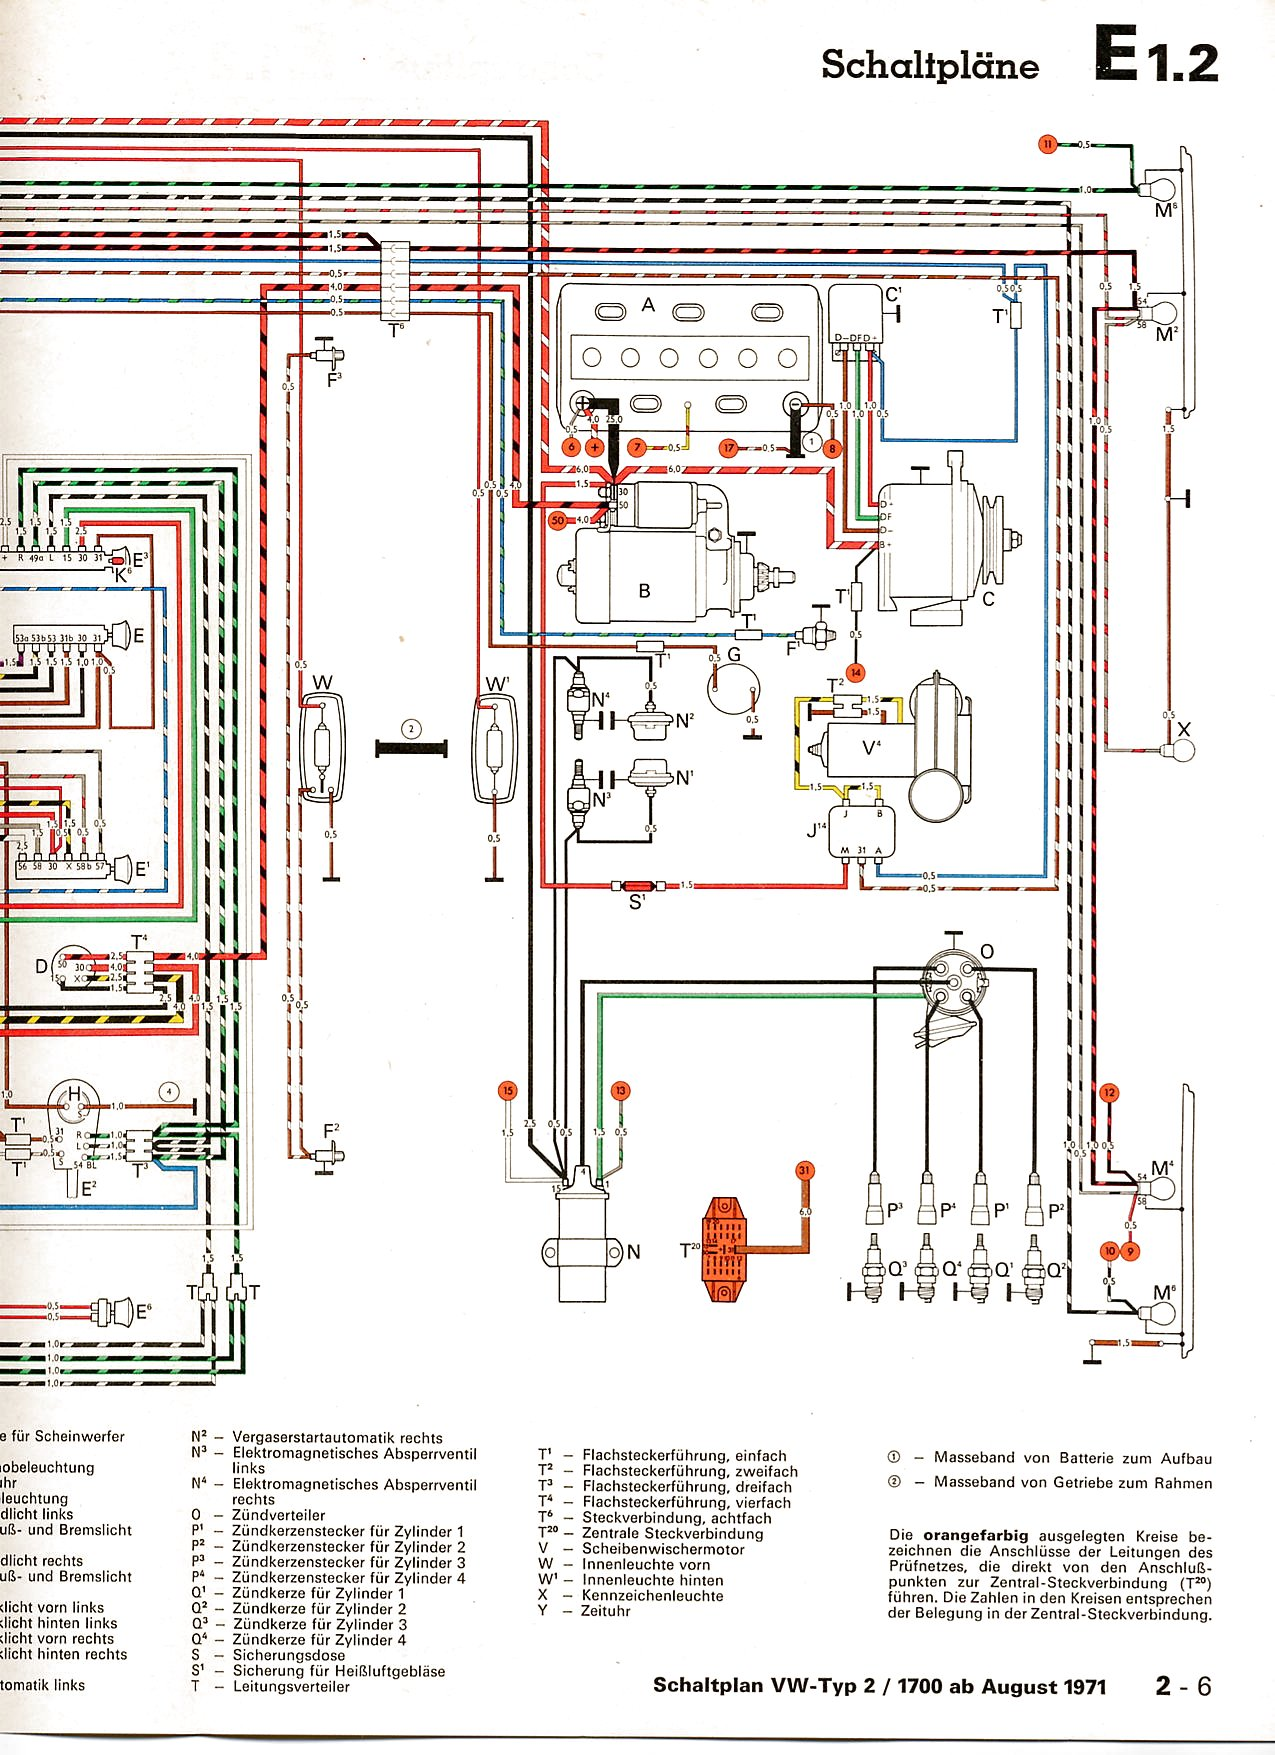 1968 vw type 1 wiring diagram 2003 dodge grand caravan a c 1972 wire harness schematic schema bus blog data antenna source thesamba com